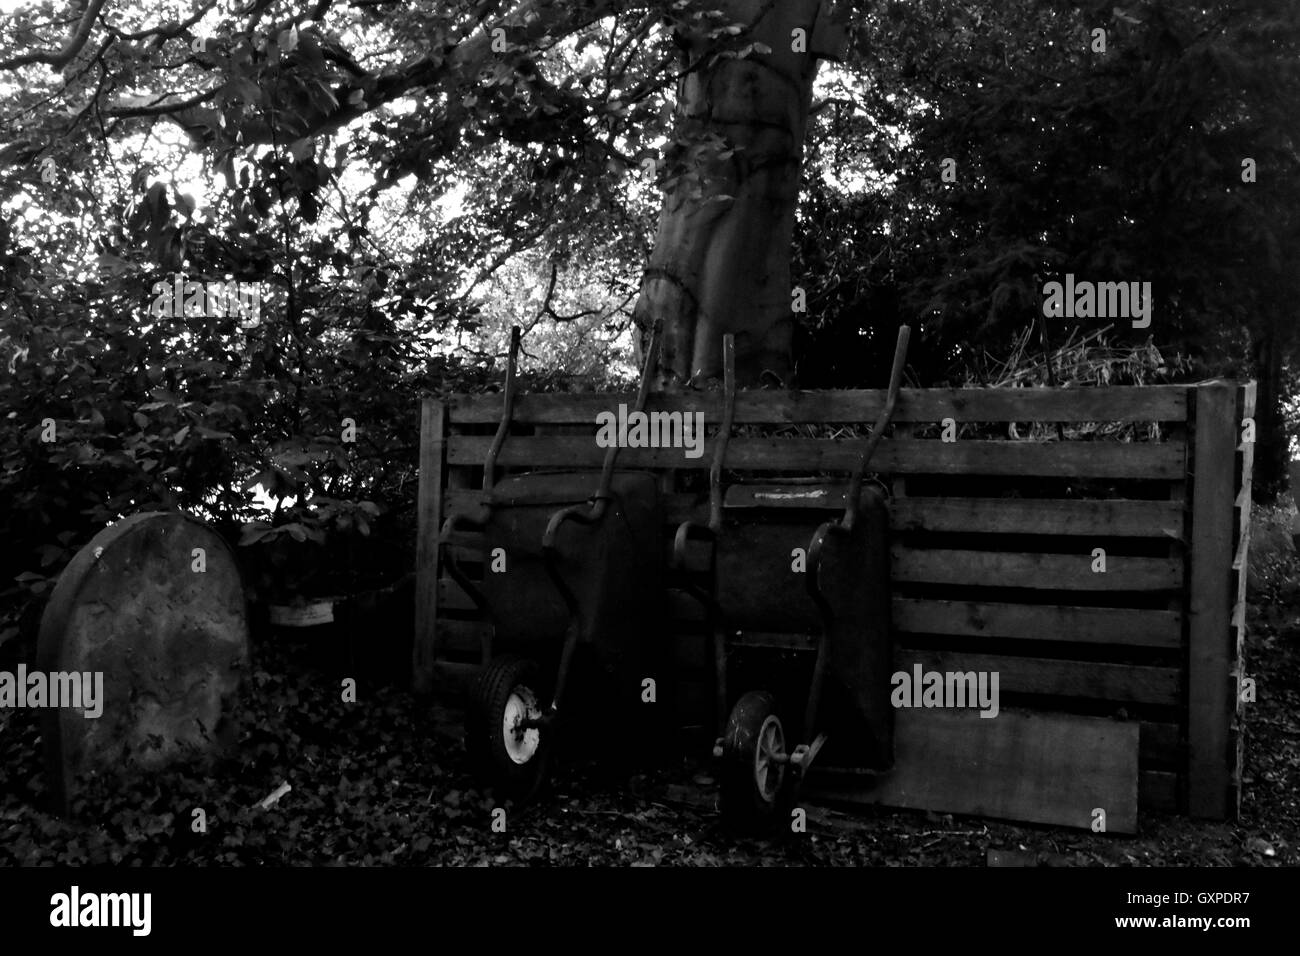 Wheelbarrows in the Framlingham Cemetery - Stock Image